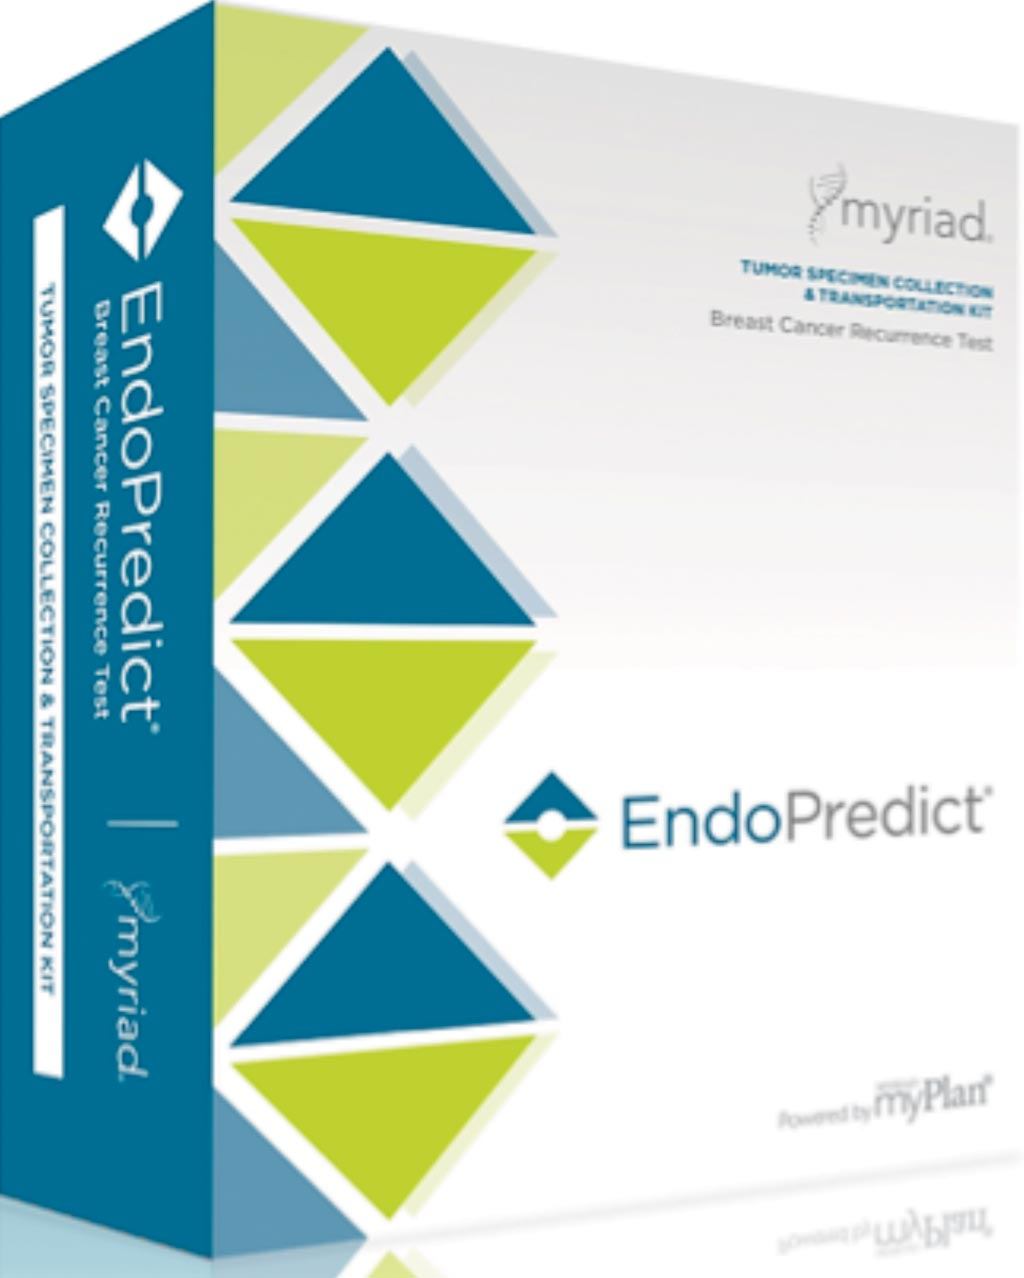 Image: EndoPredict is a next-generation breast cancer recurrence test that integrates tumor biology and pathology to accurately predict early and late (5-15 years) recurrence with an individualized absolute chemotherapy benefit (Photo courtesy of Myriad Genetics).